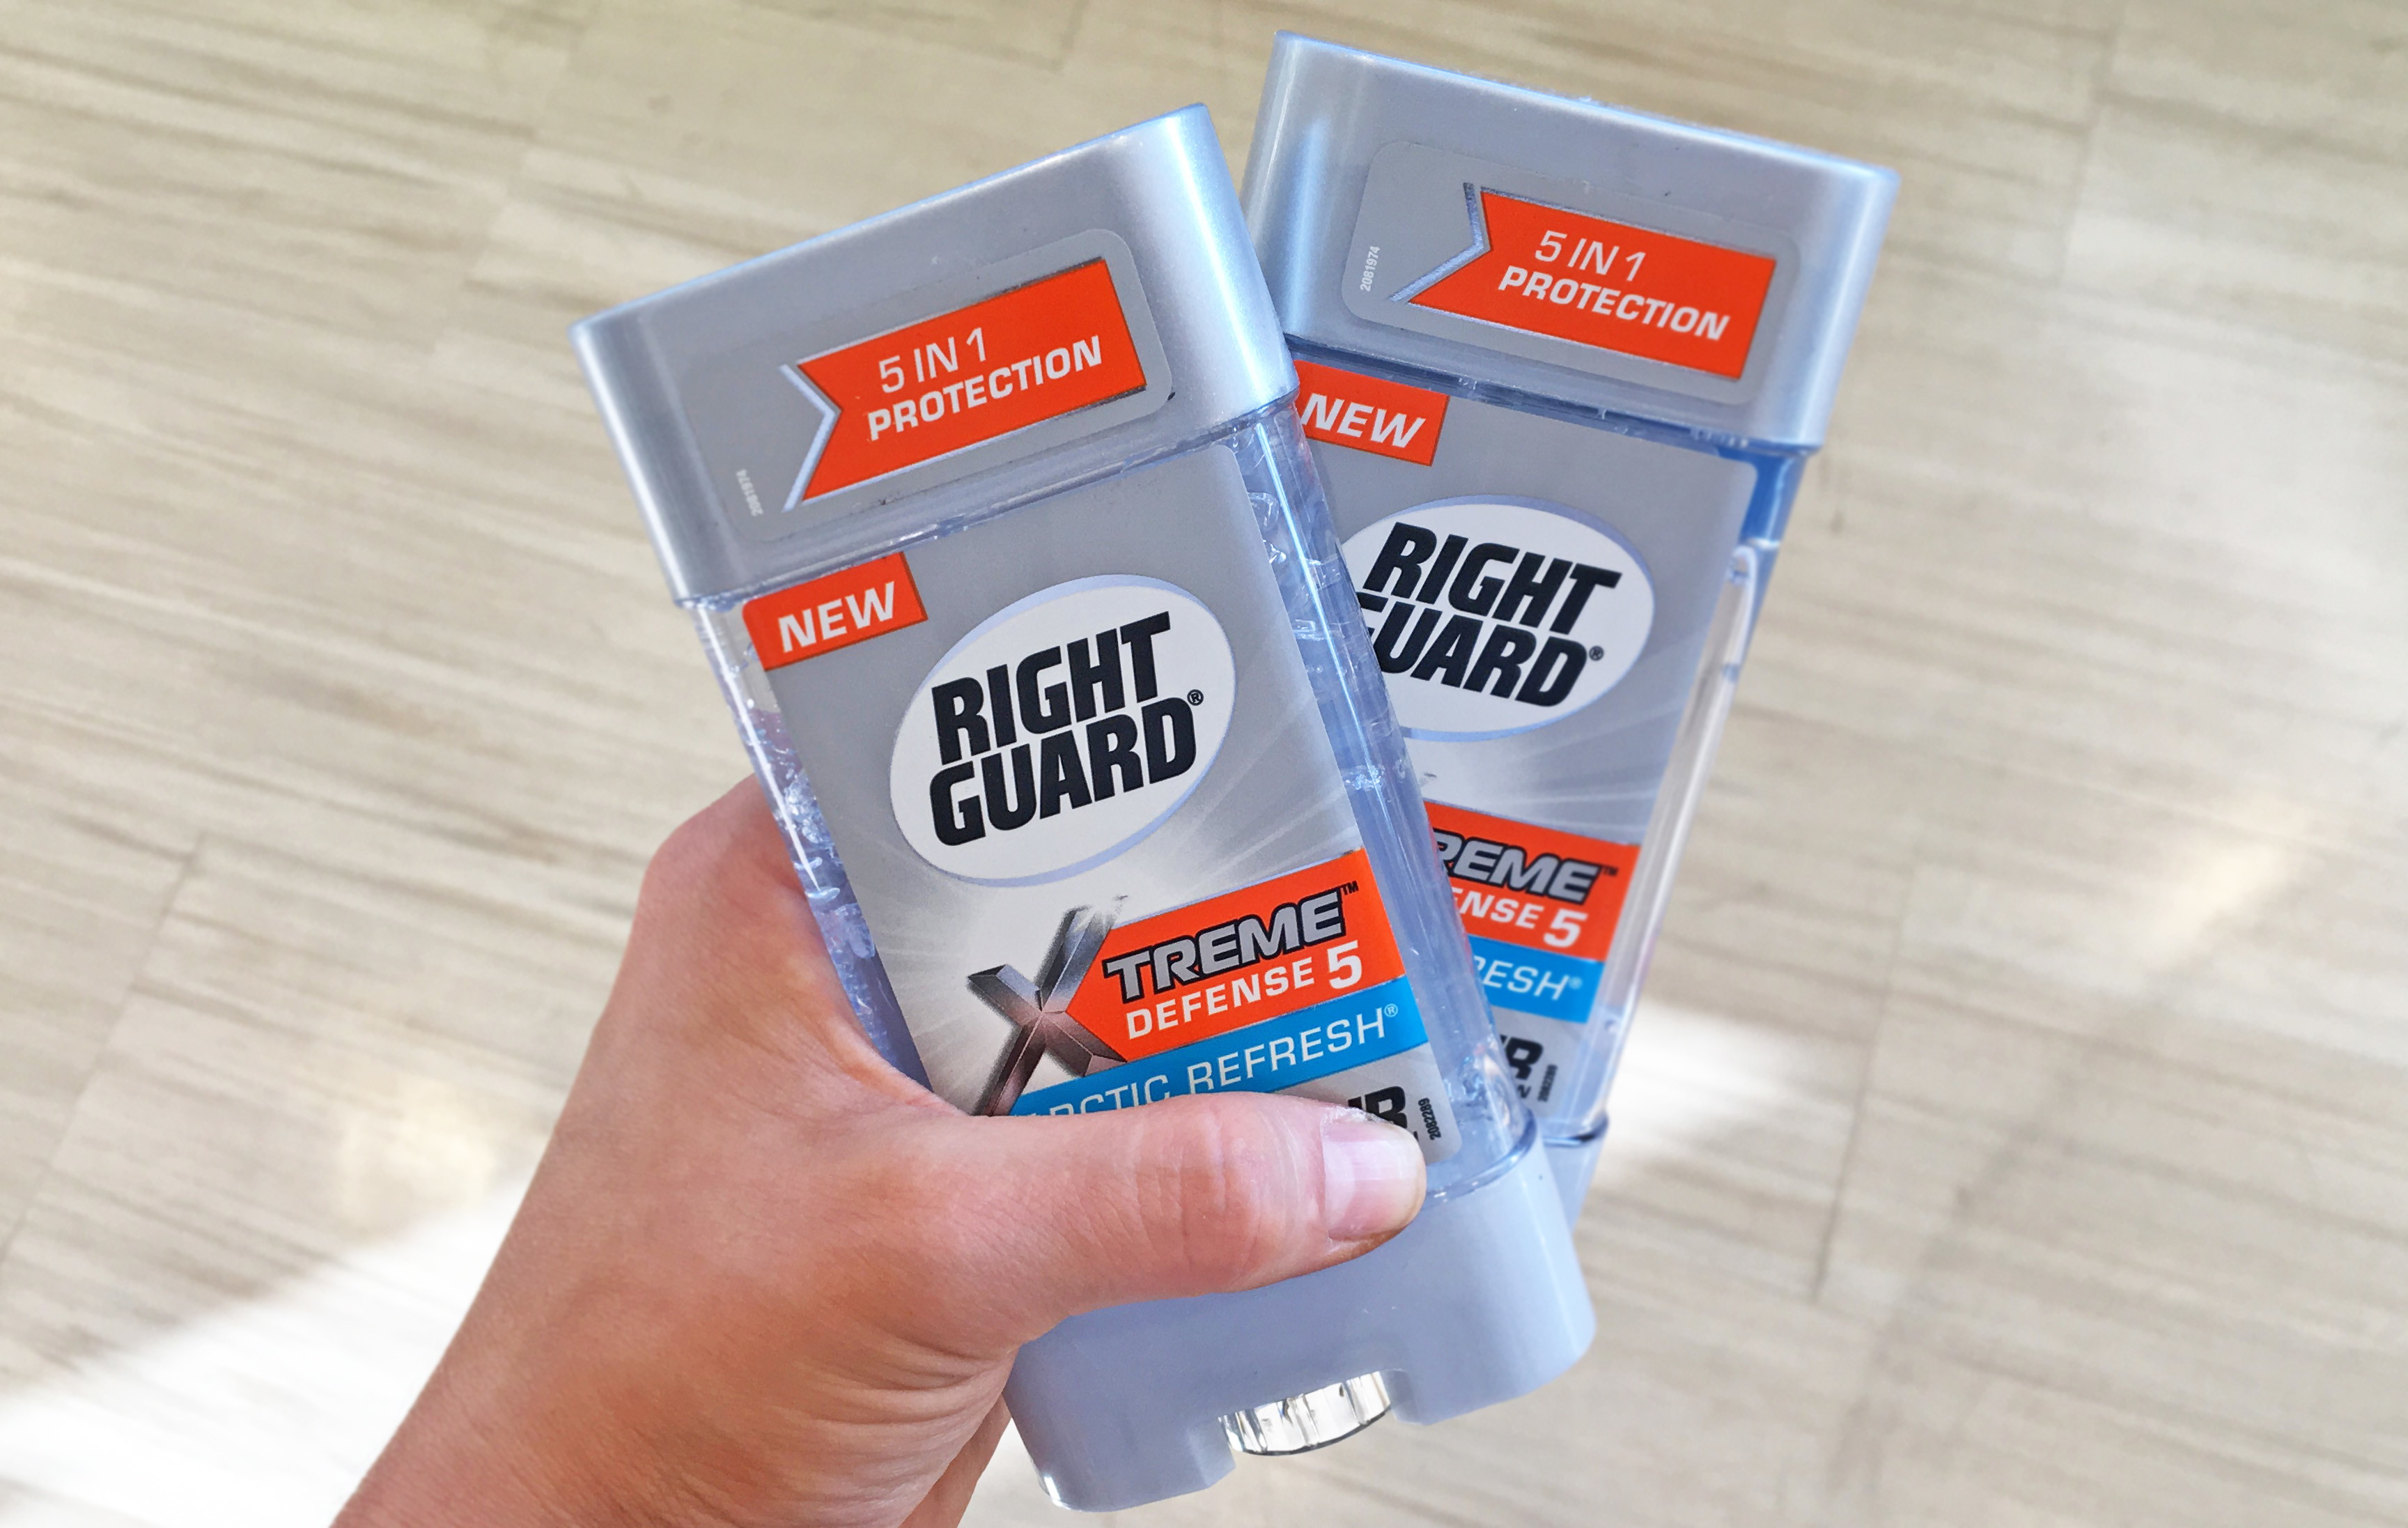 Cheap Right Guard and Purex at Rite Aid, Starting 12/3!